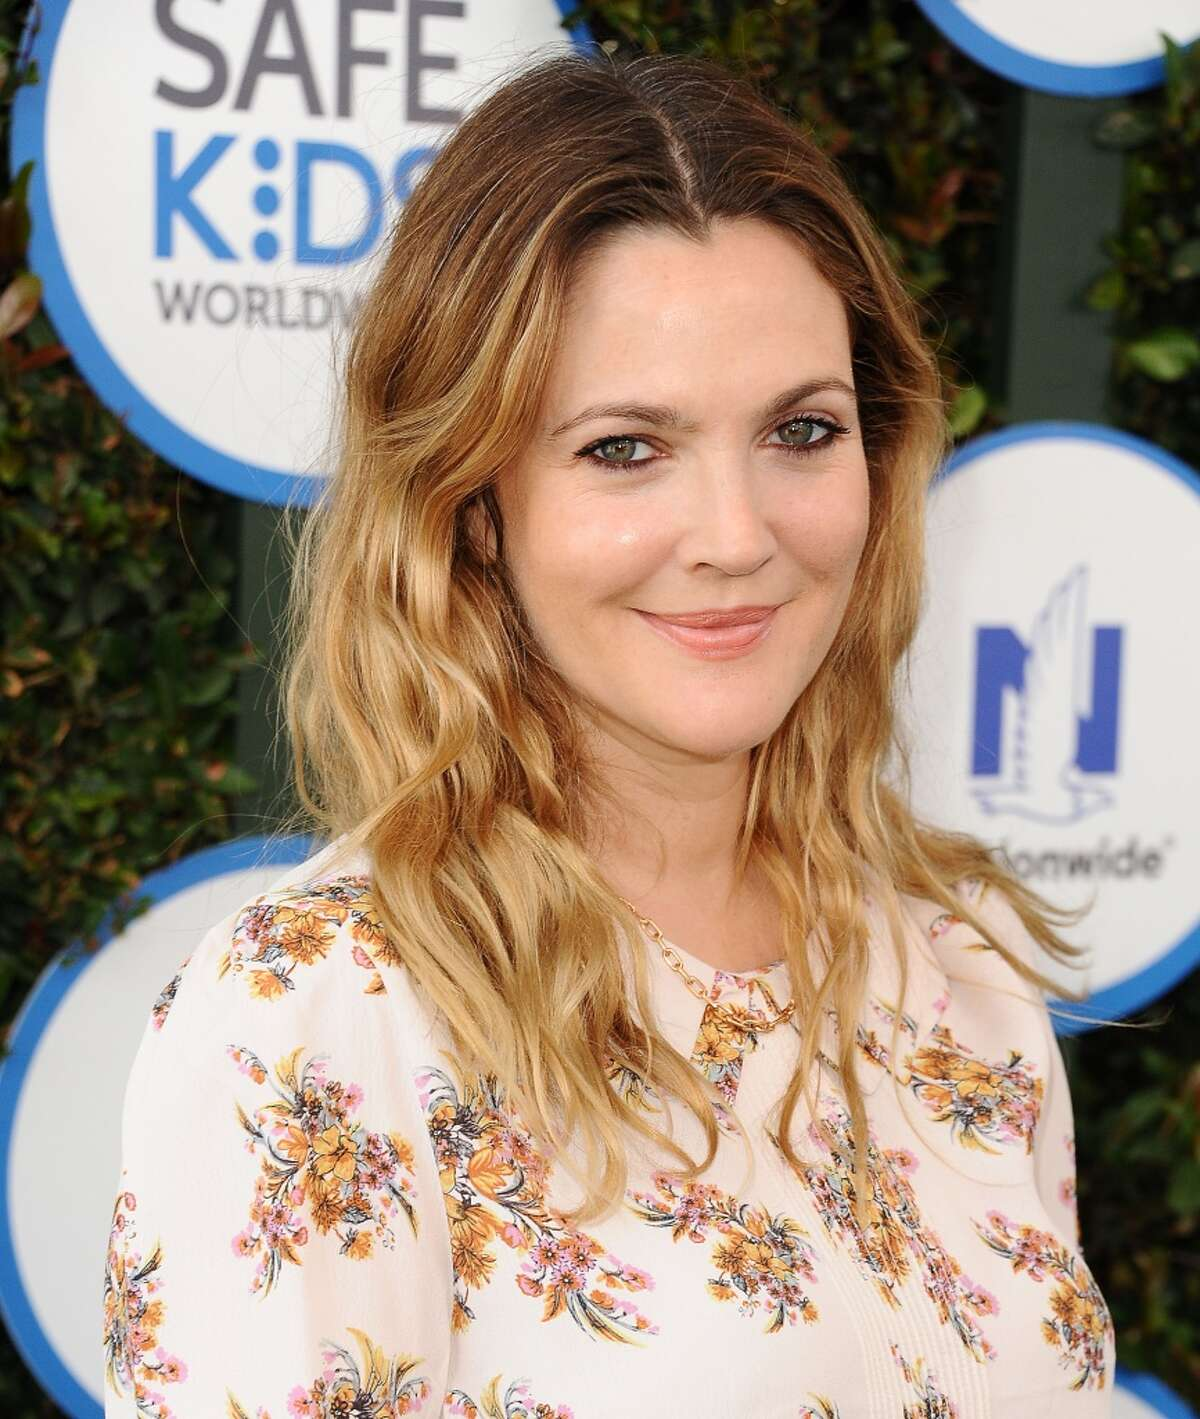 Drew Barrymore in 2015, now a mom, producer and businessperson, as well as actress.